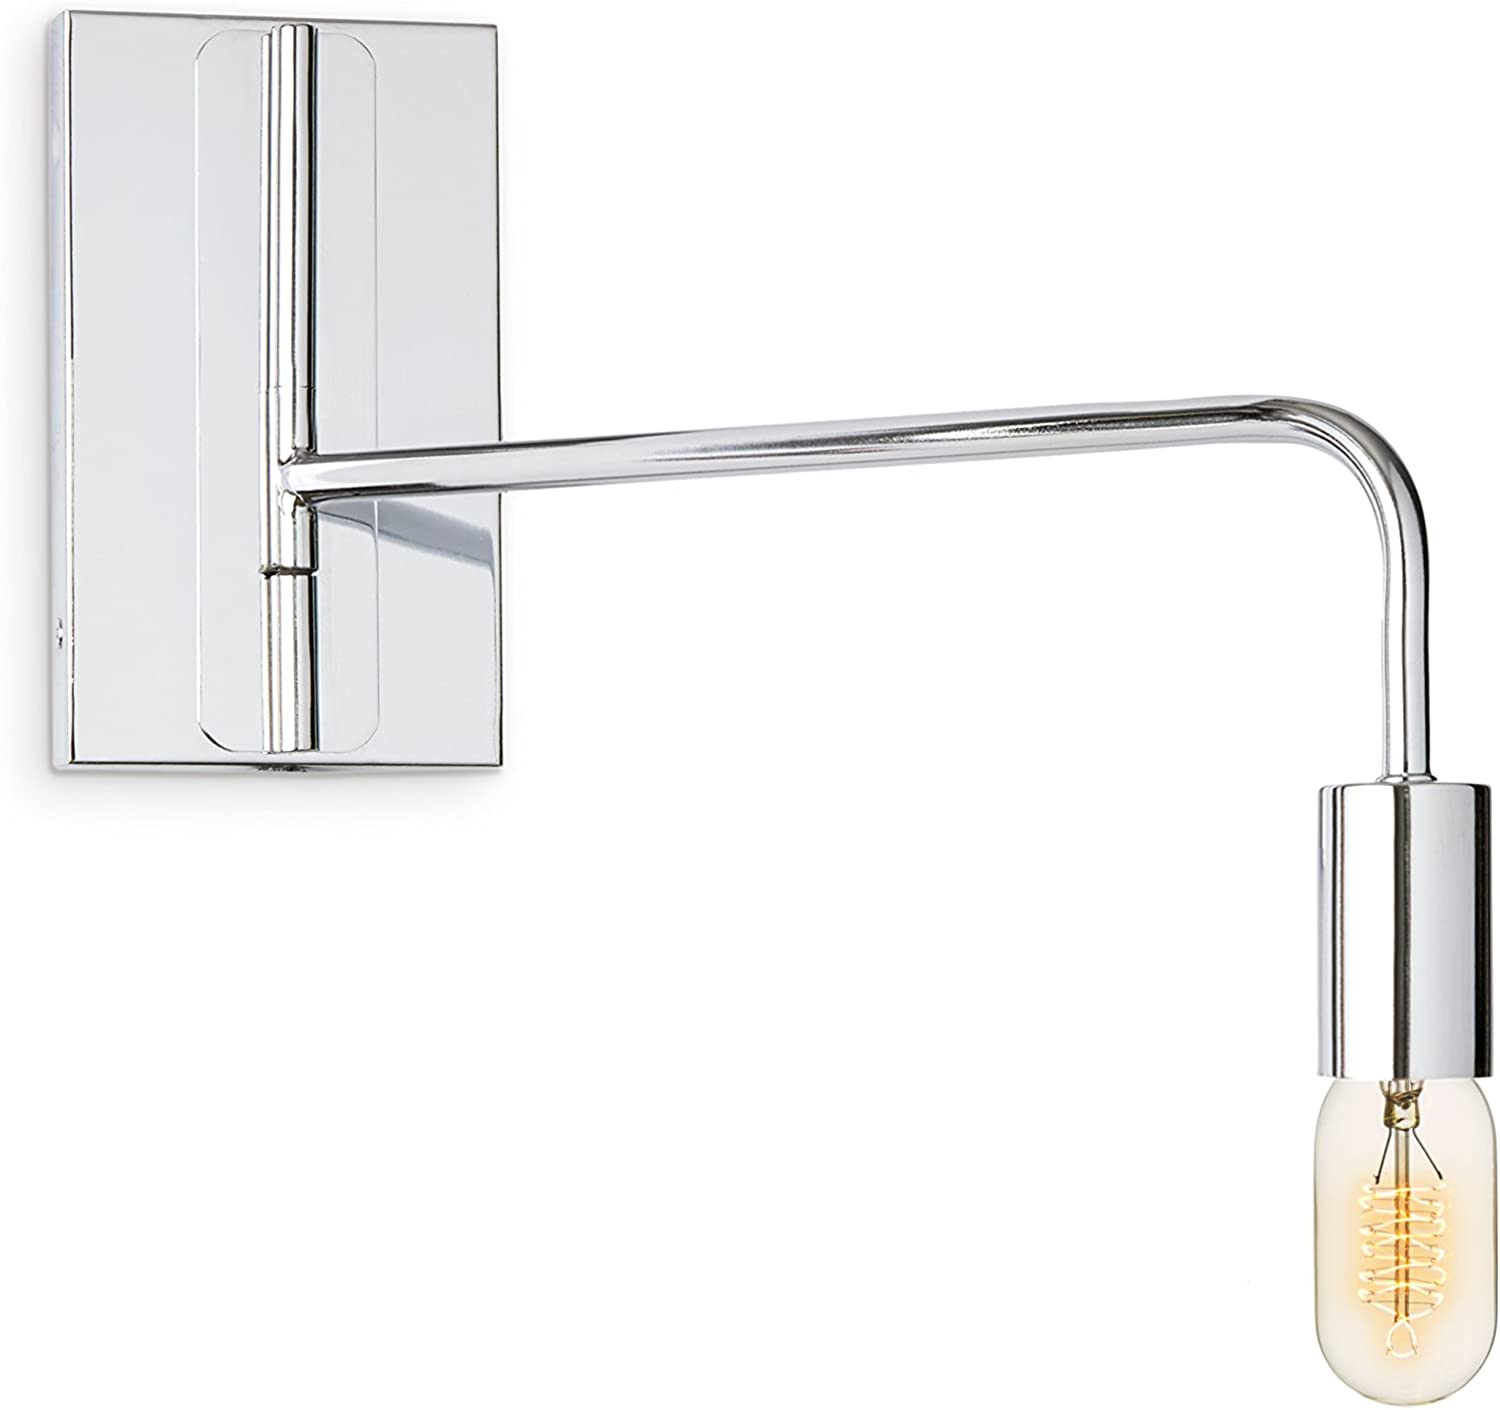 Chrome Wall Sconce Lamp Light - Adjustable Swing Arm, Plugin and Hardwire Inssizetion Options, Edison Bulb Included, Brooklyn Bulb Co. Hoyt Collection - ETL Listed